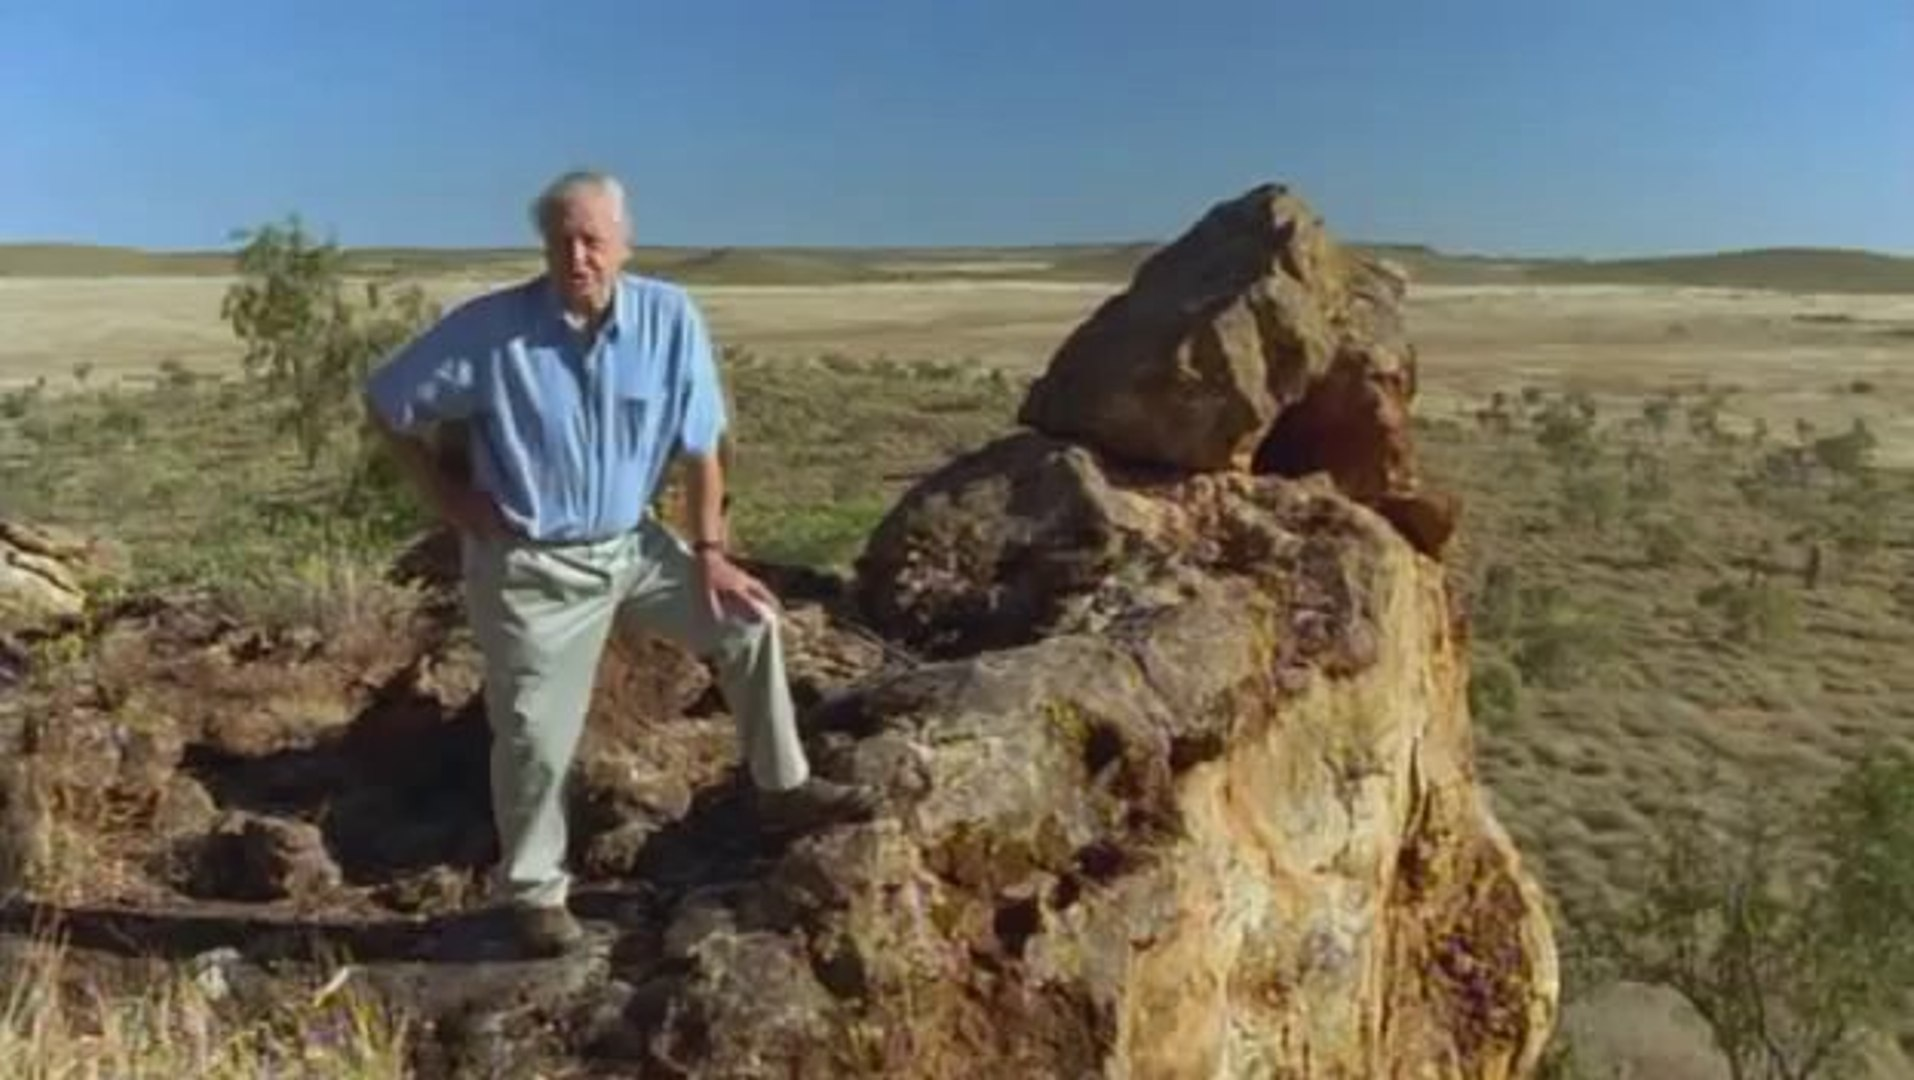 GREAT NATURAL WONDERS OF THE WORLD - Discovery/History/Nature (documentary)